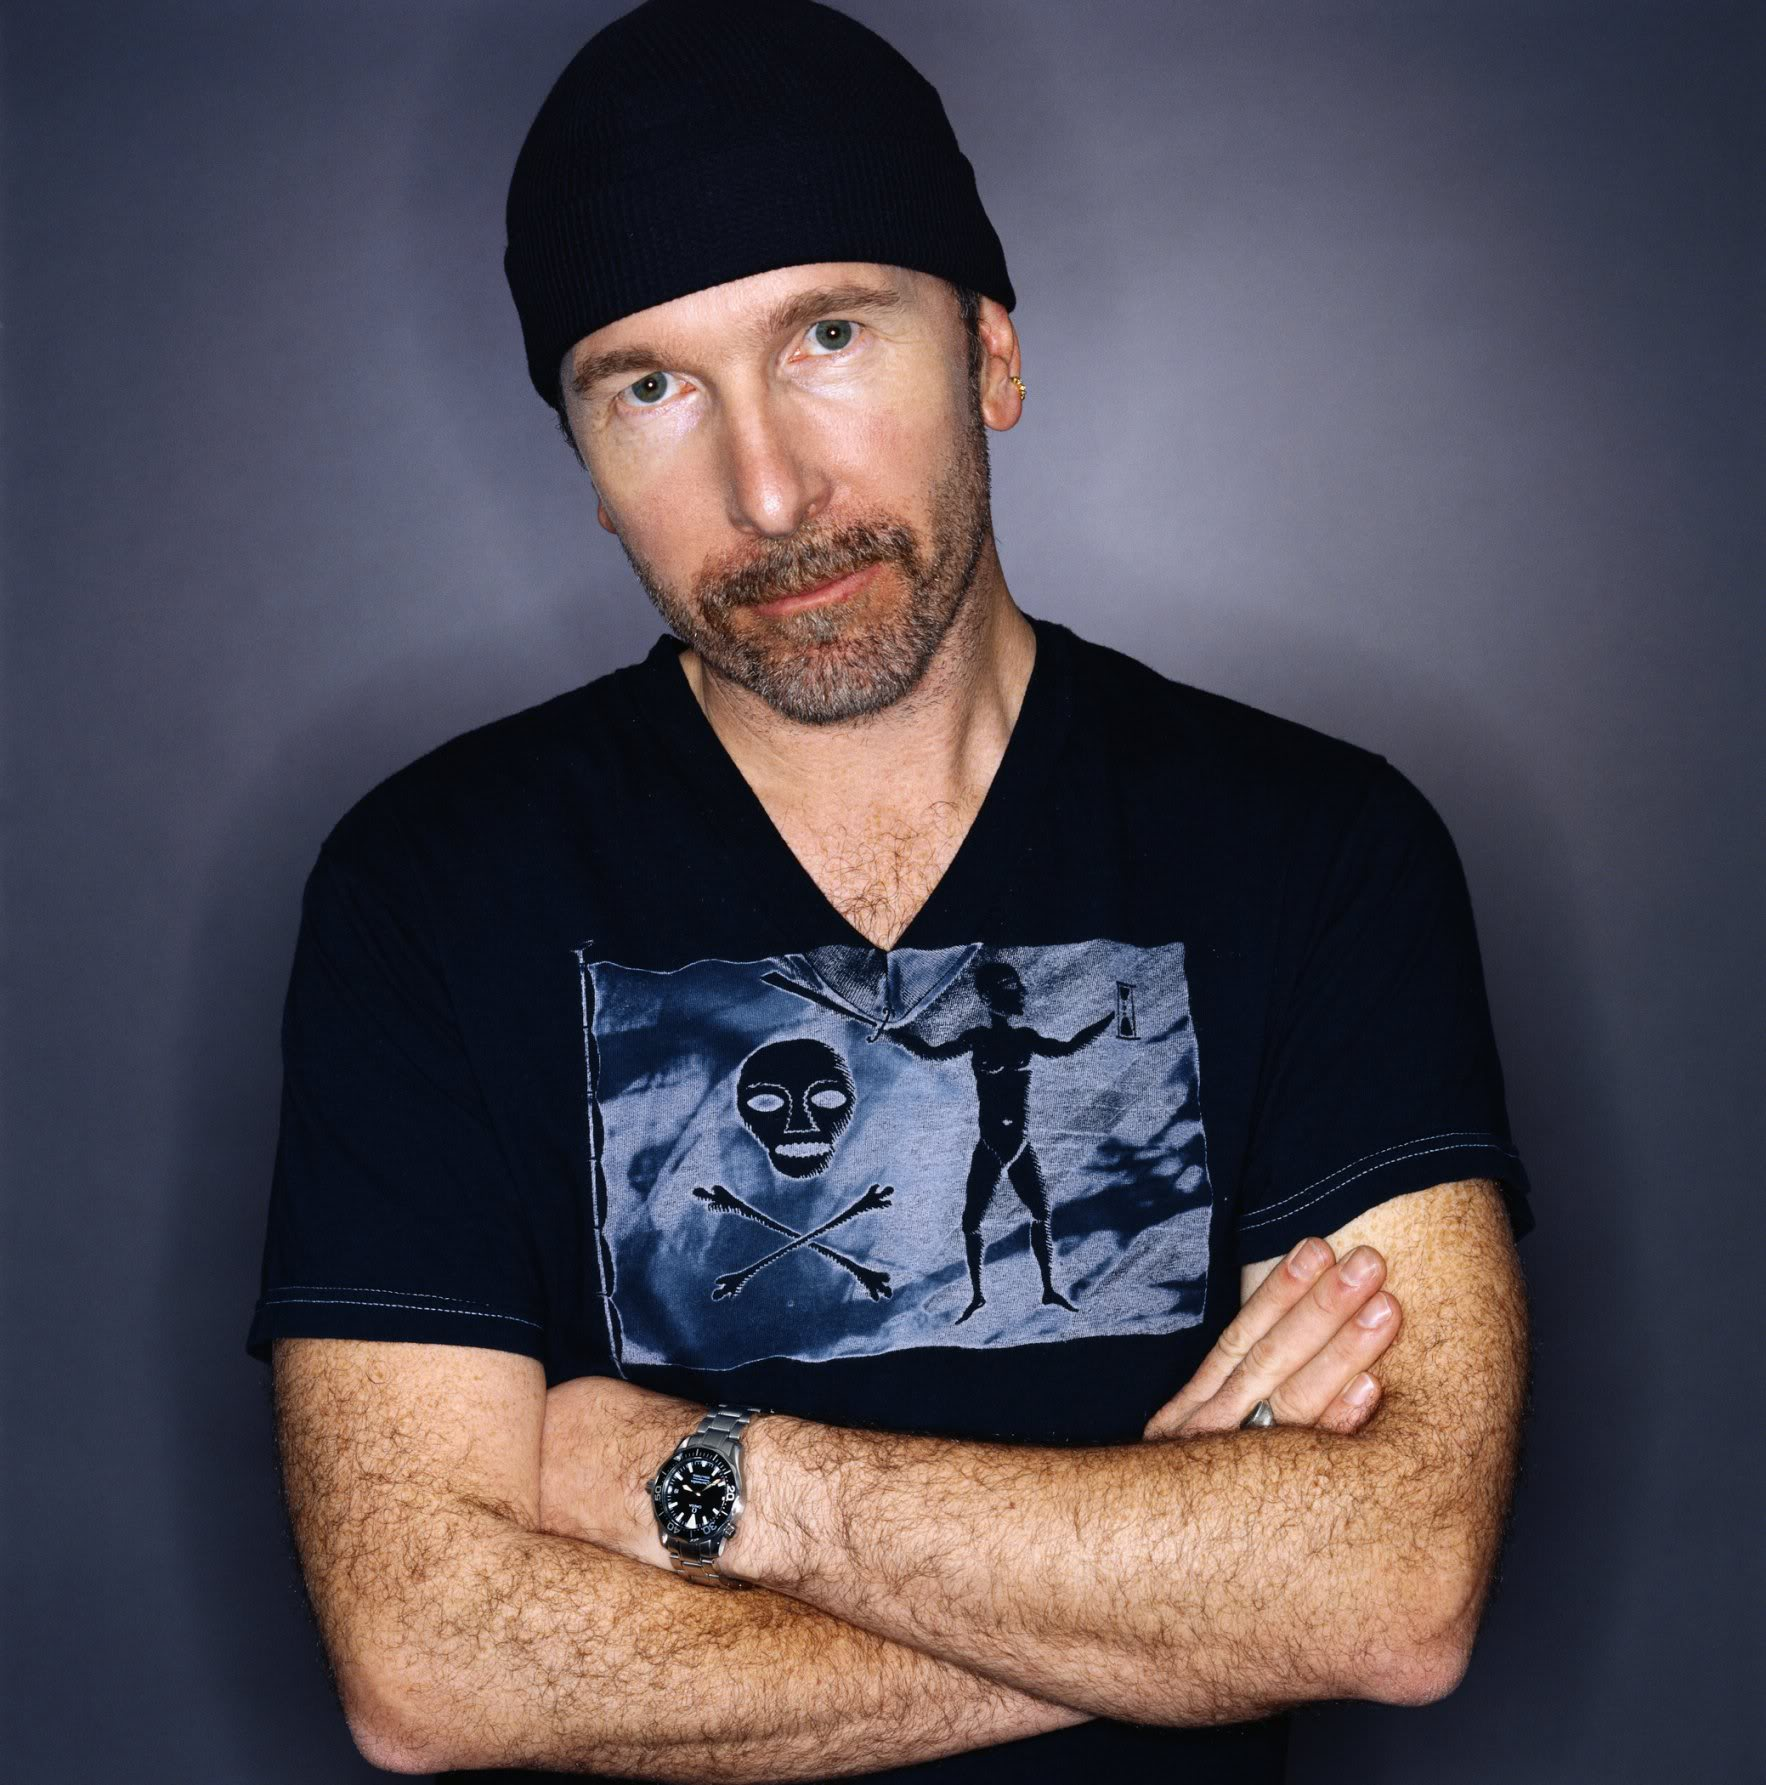 The Edge Net Worth Therichest